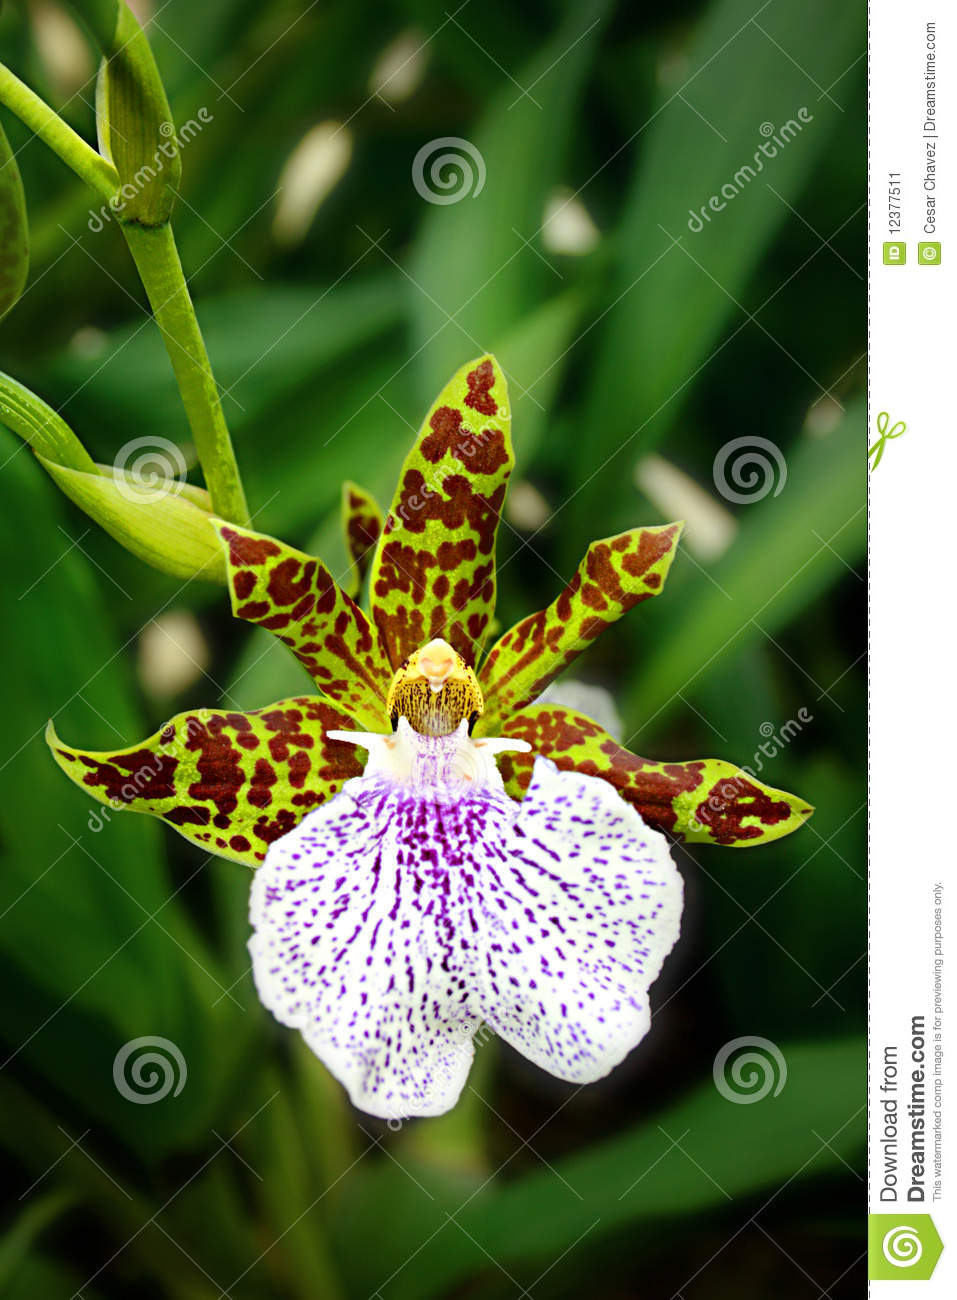 leopard orchid stock image image of plant bloom orquidea 12377511. Black Bedroom Furniture Sets. Home Design Ideas